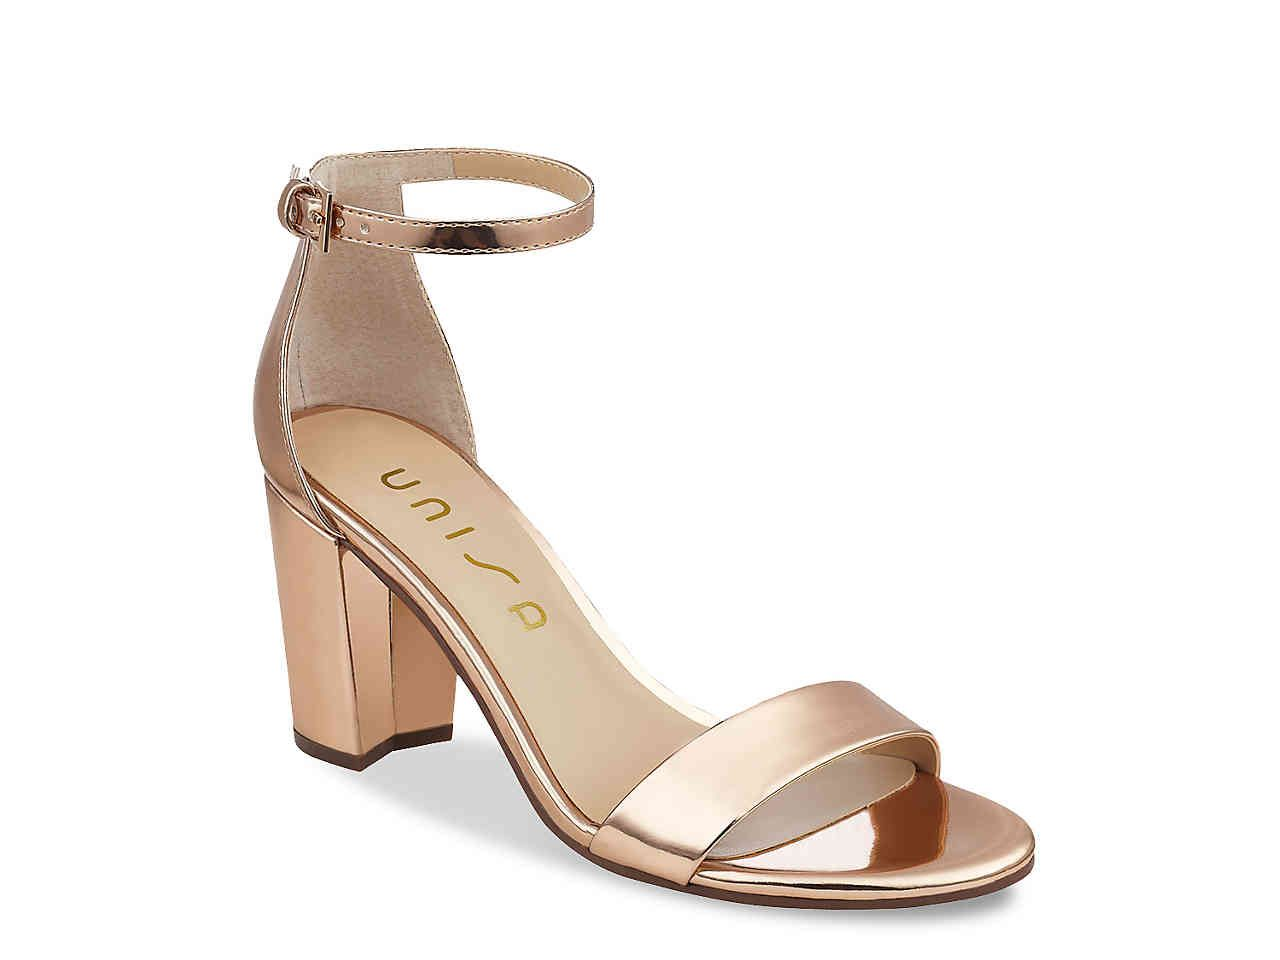 360c9cabfcd Unisa Daicy Sandal in Rose Gold from DSW